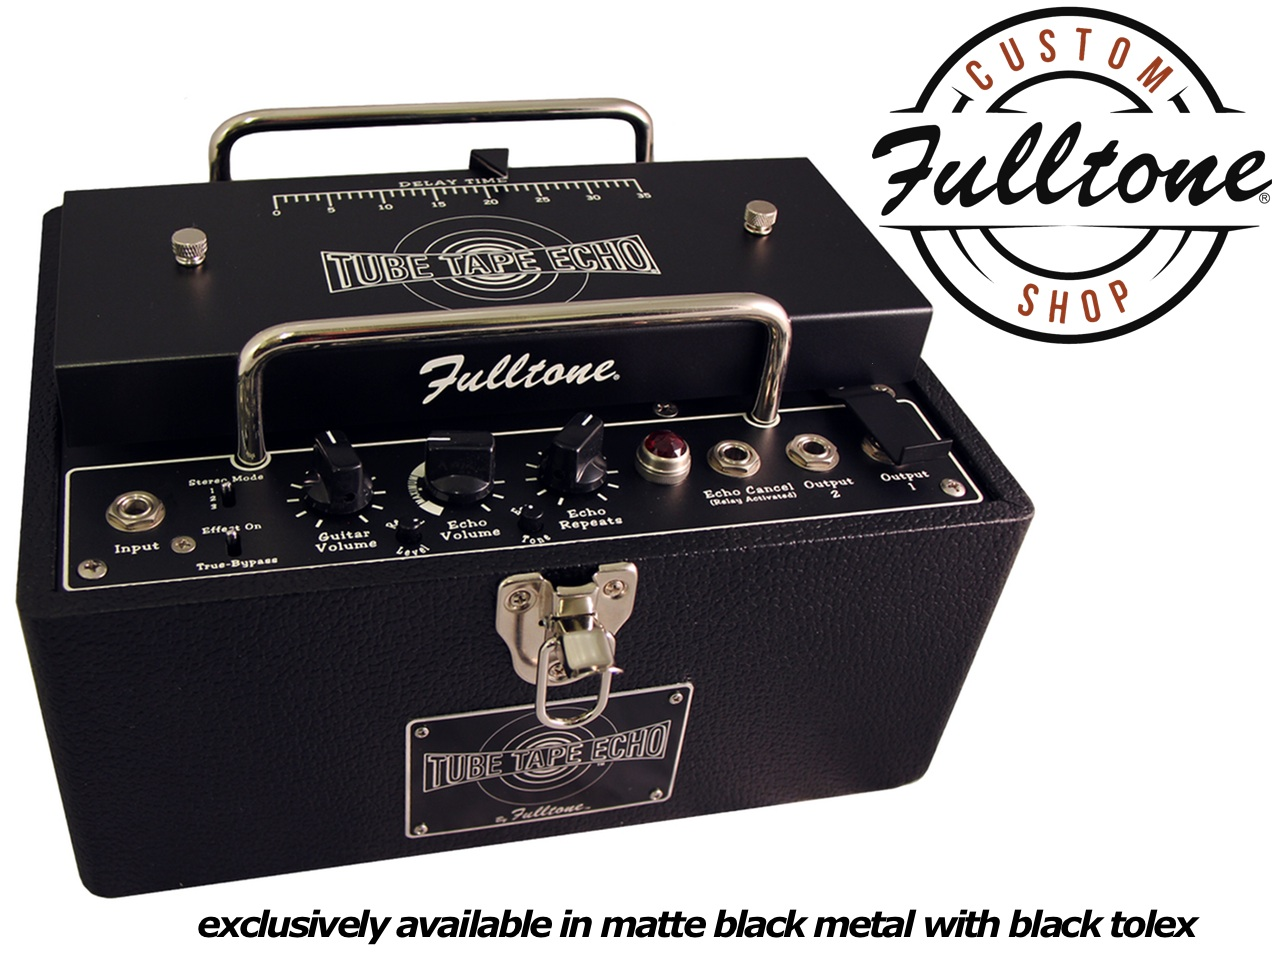 Fulltone U.S.A. Tube Tape Echo